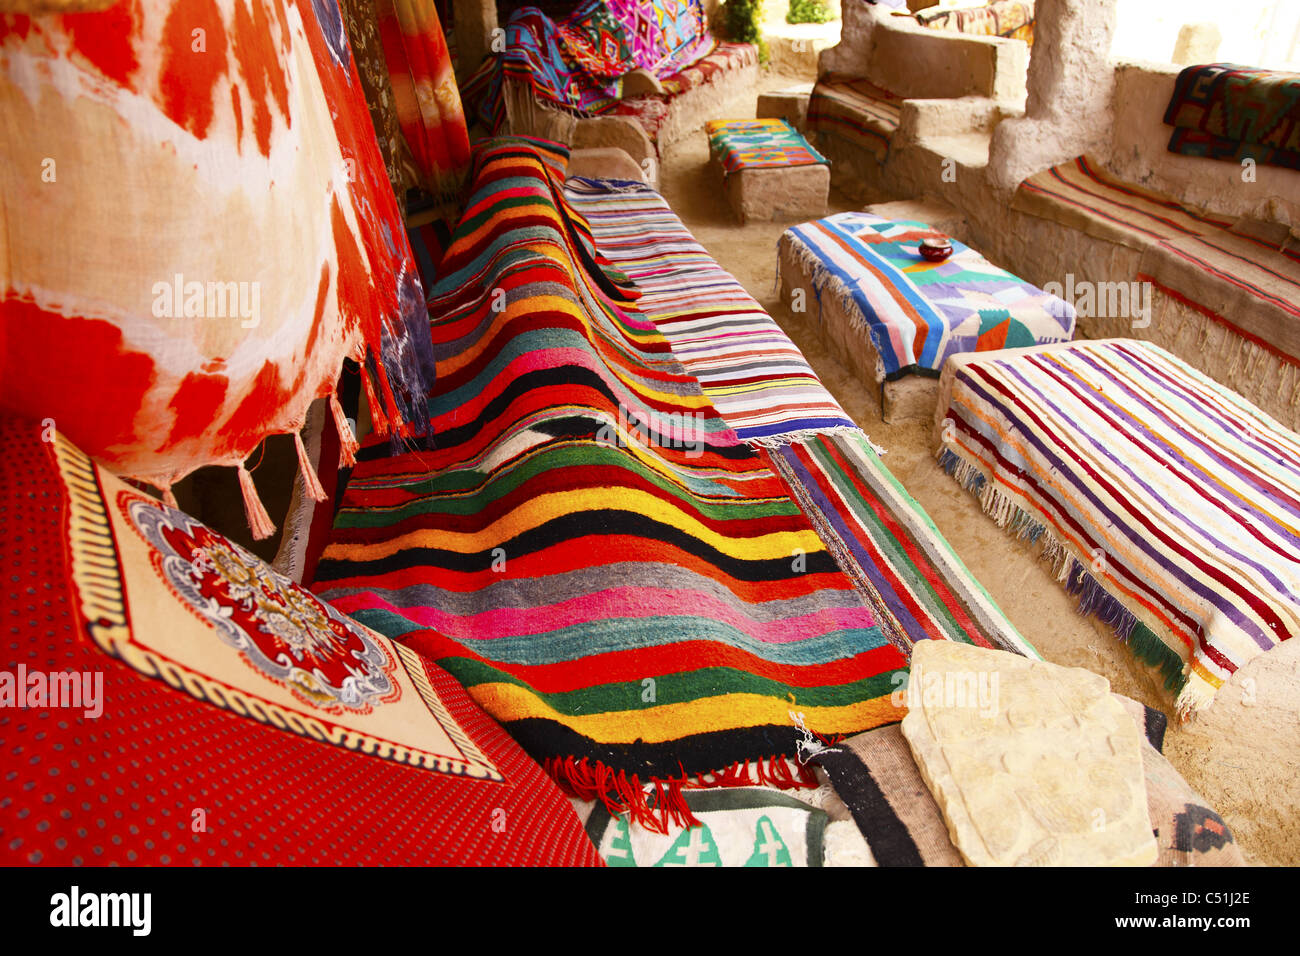 Africa, North Africa, Tunisia, Tamerza Oasis, Interior of Stall Displaying Local Cloths and Carpets - Stock Image